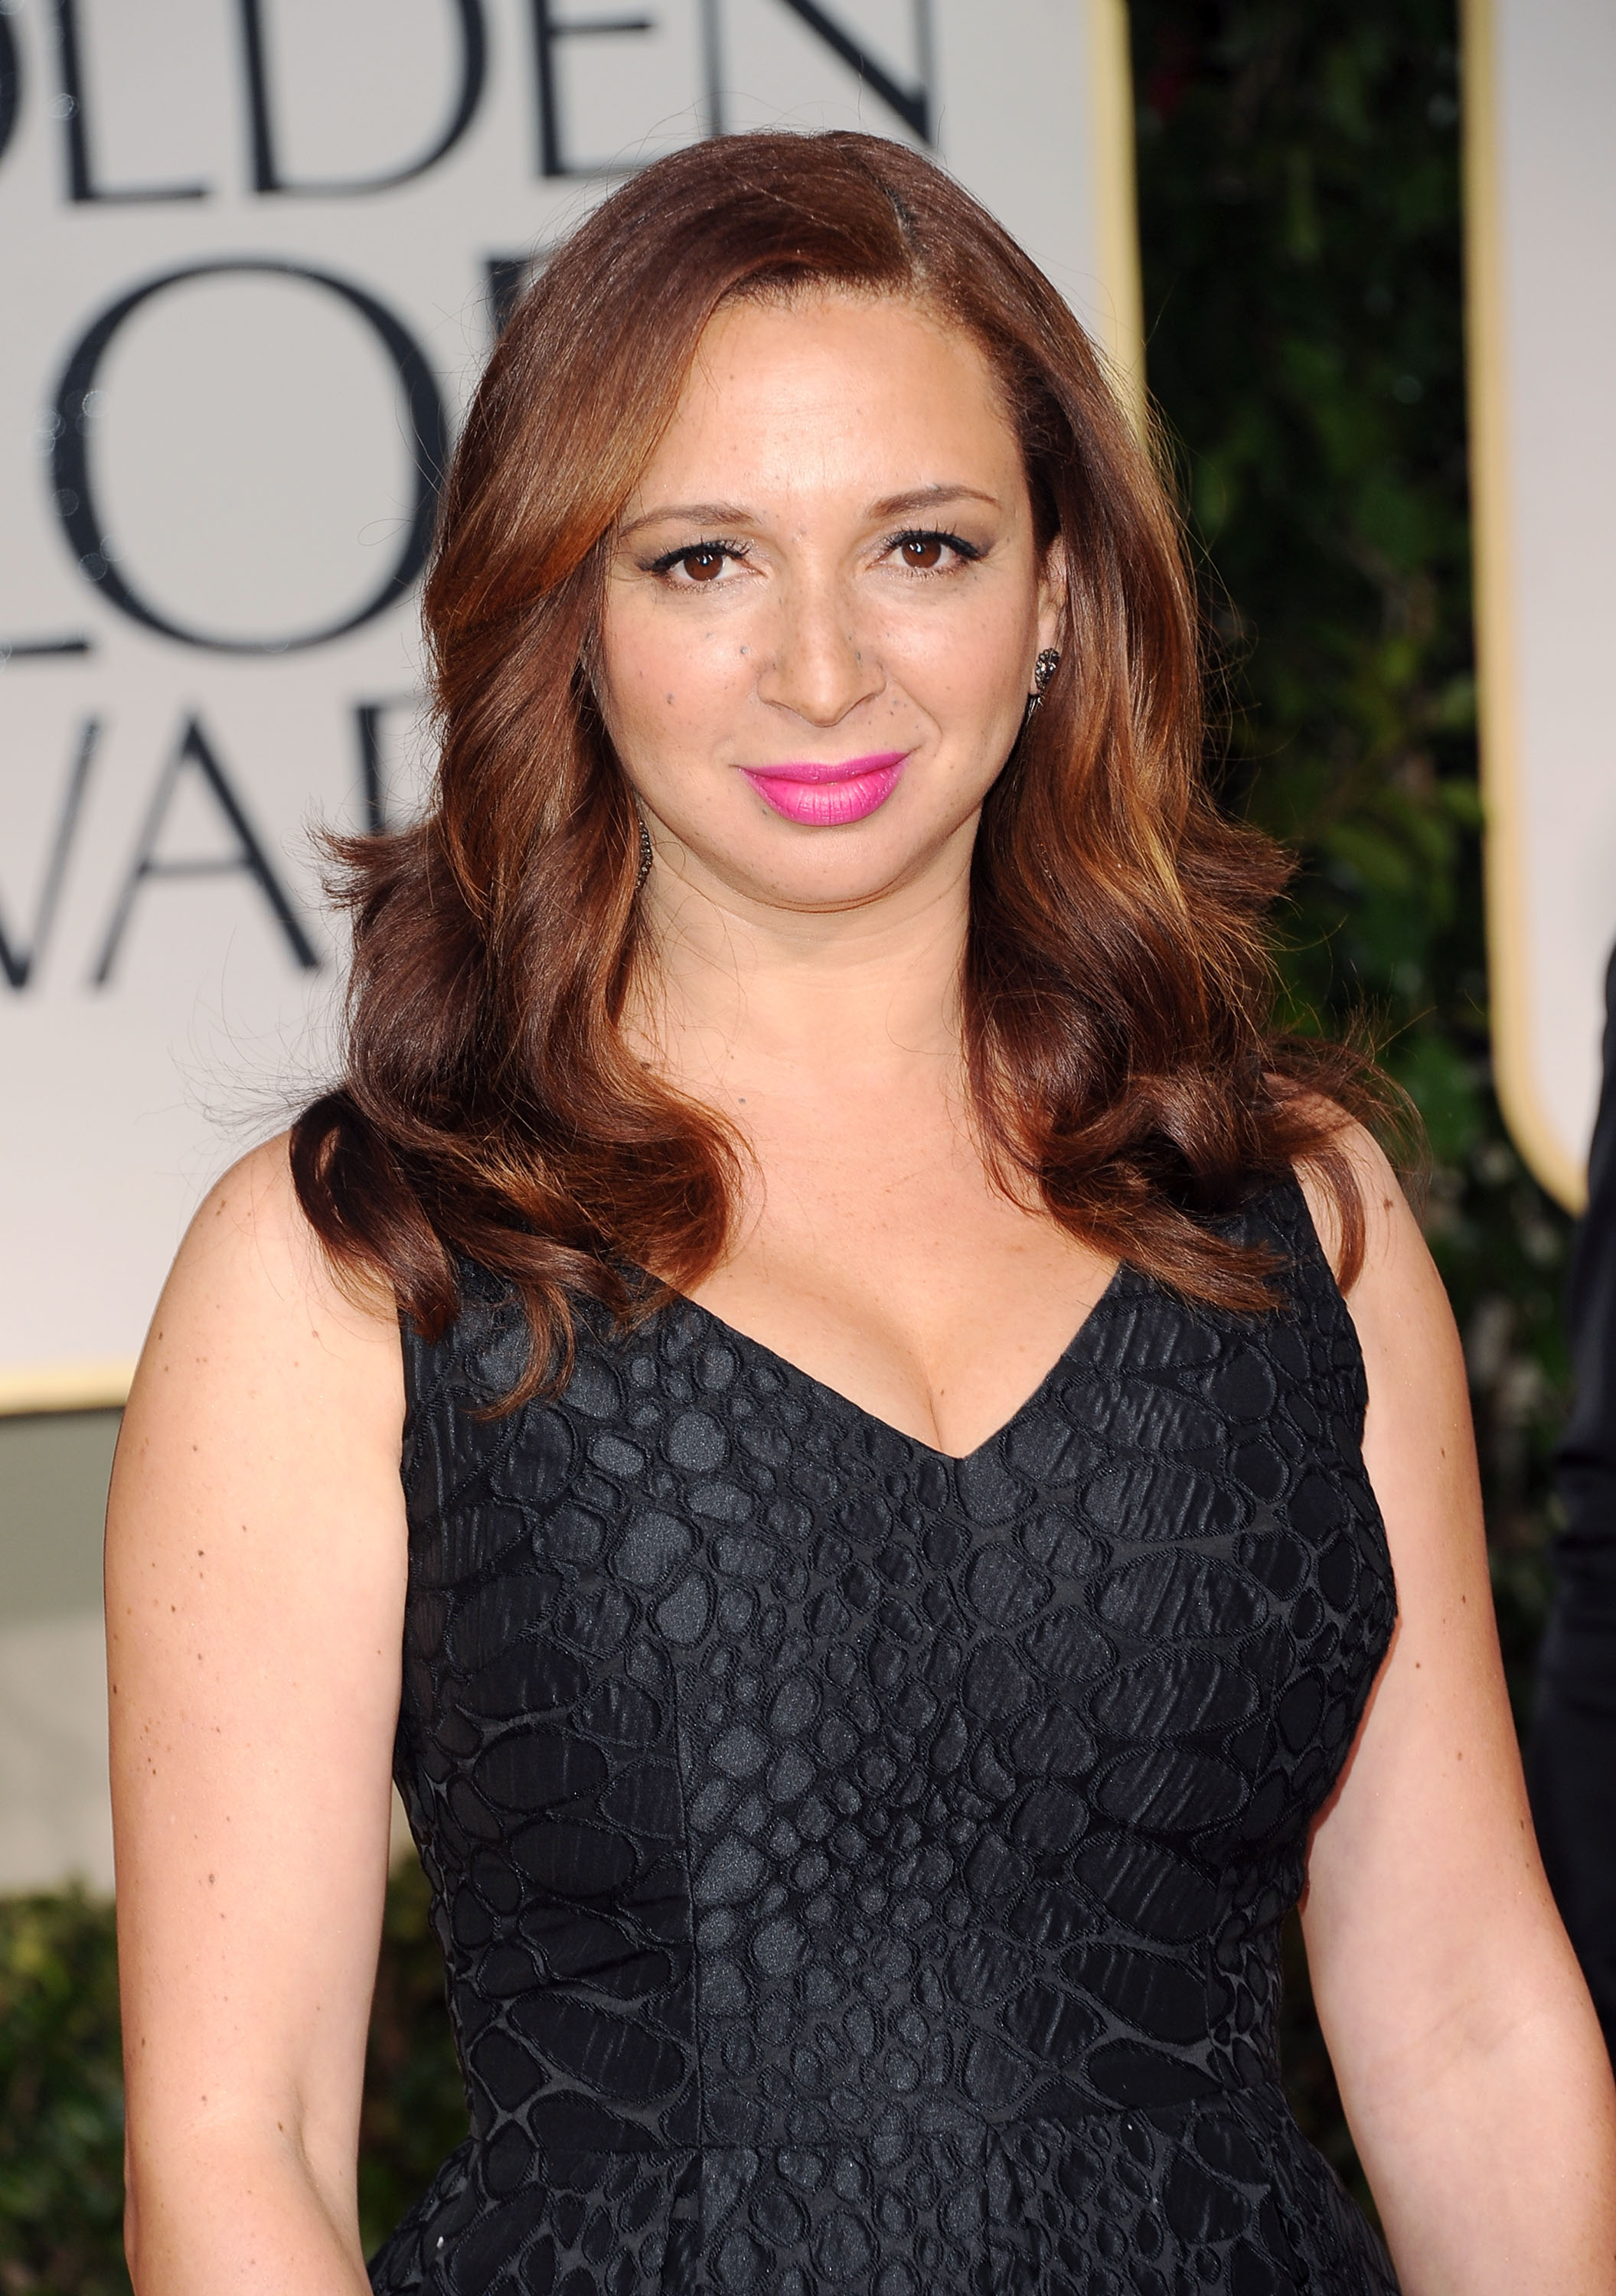 Maya Rudolph earned a  million dollar salary - leaving the net worth at 4 million in 2018